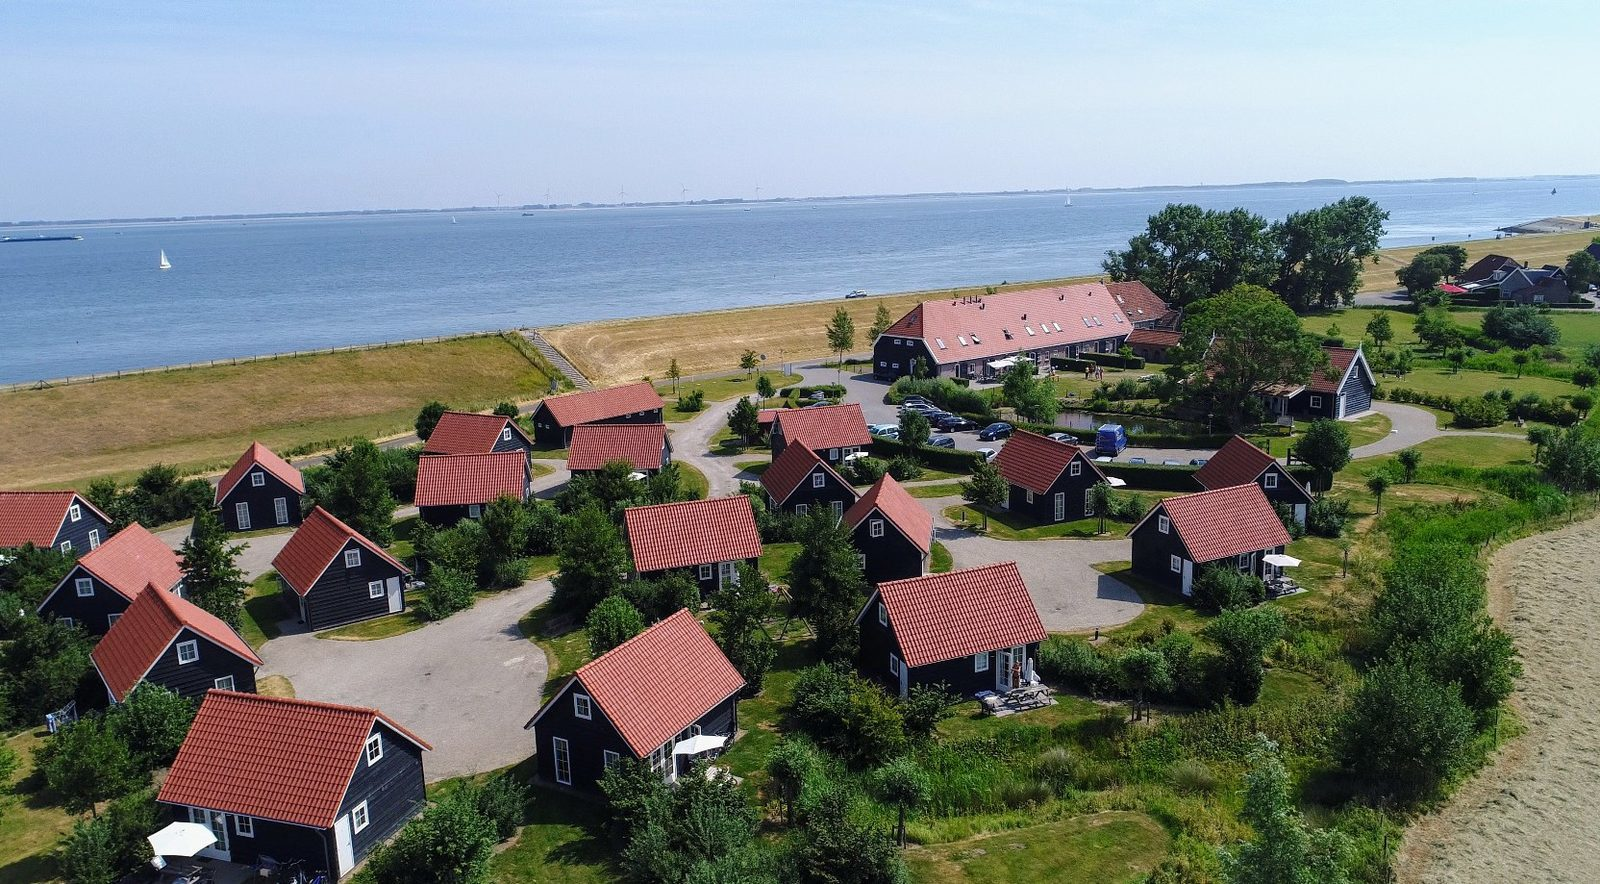 Zeeland holiday home